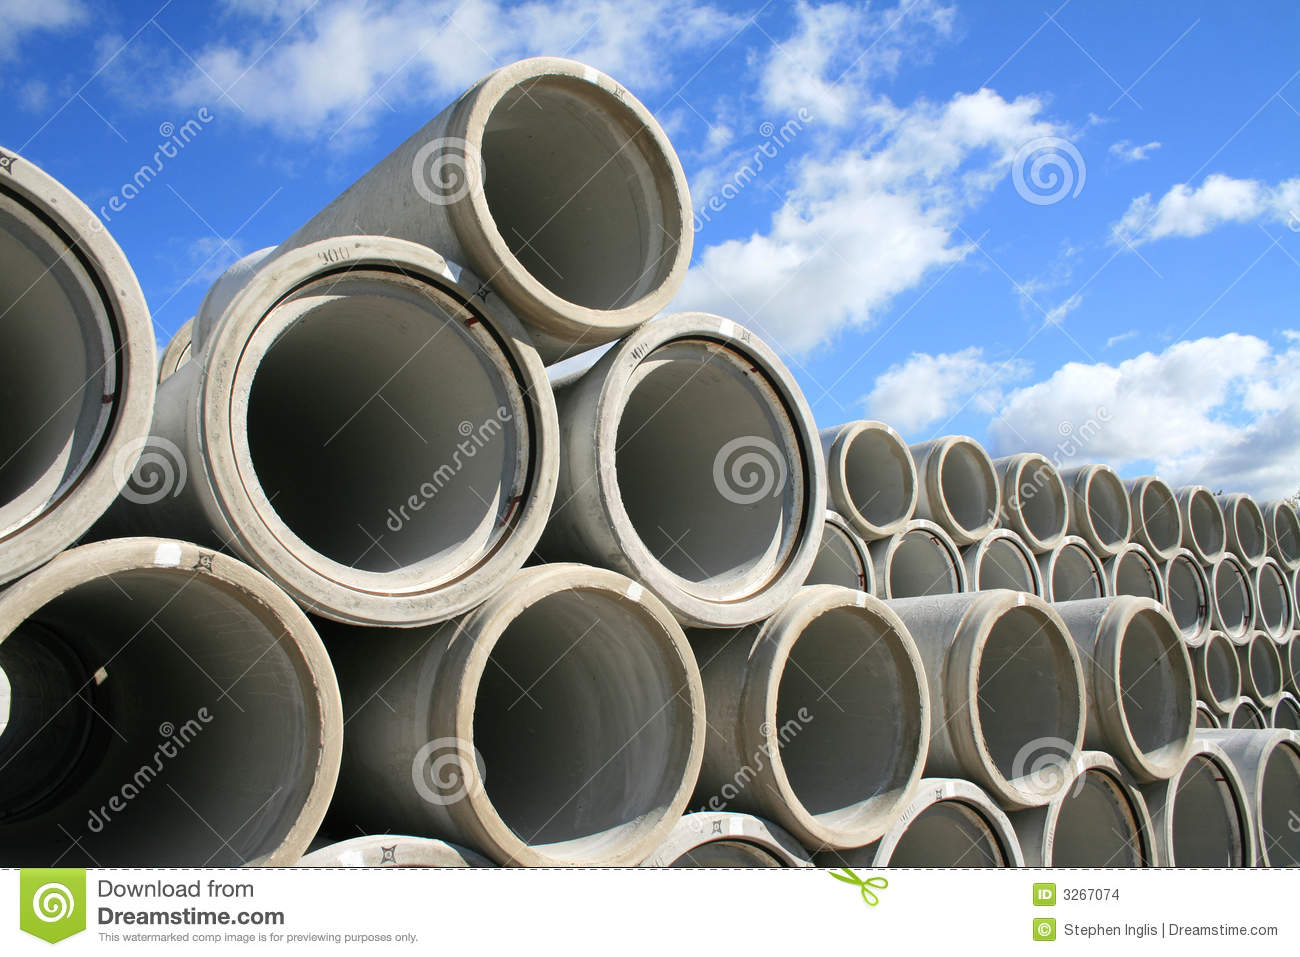 Stockpile of water pipes stock photo. Image of stacked